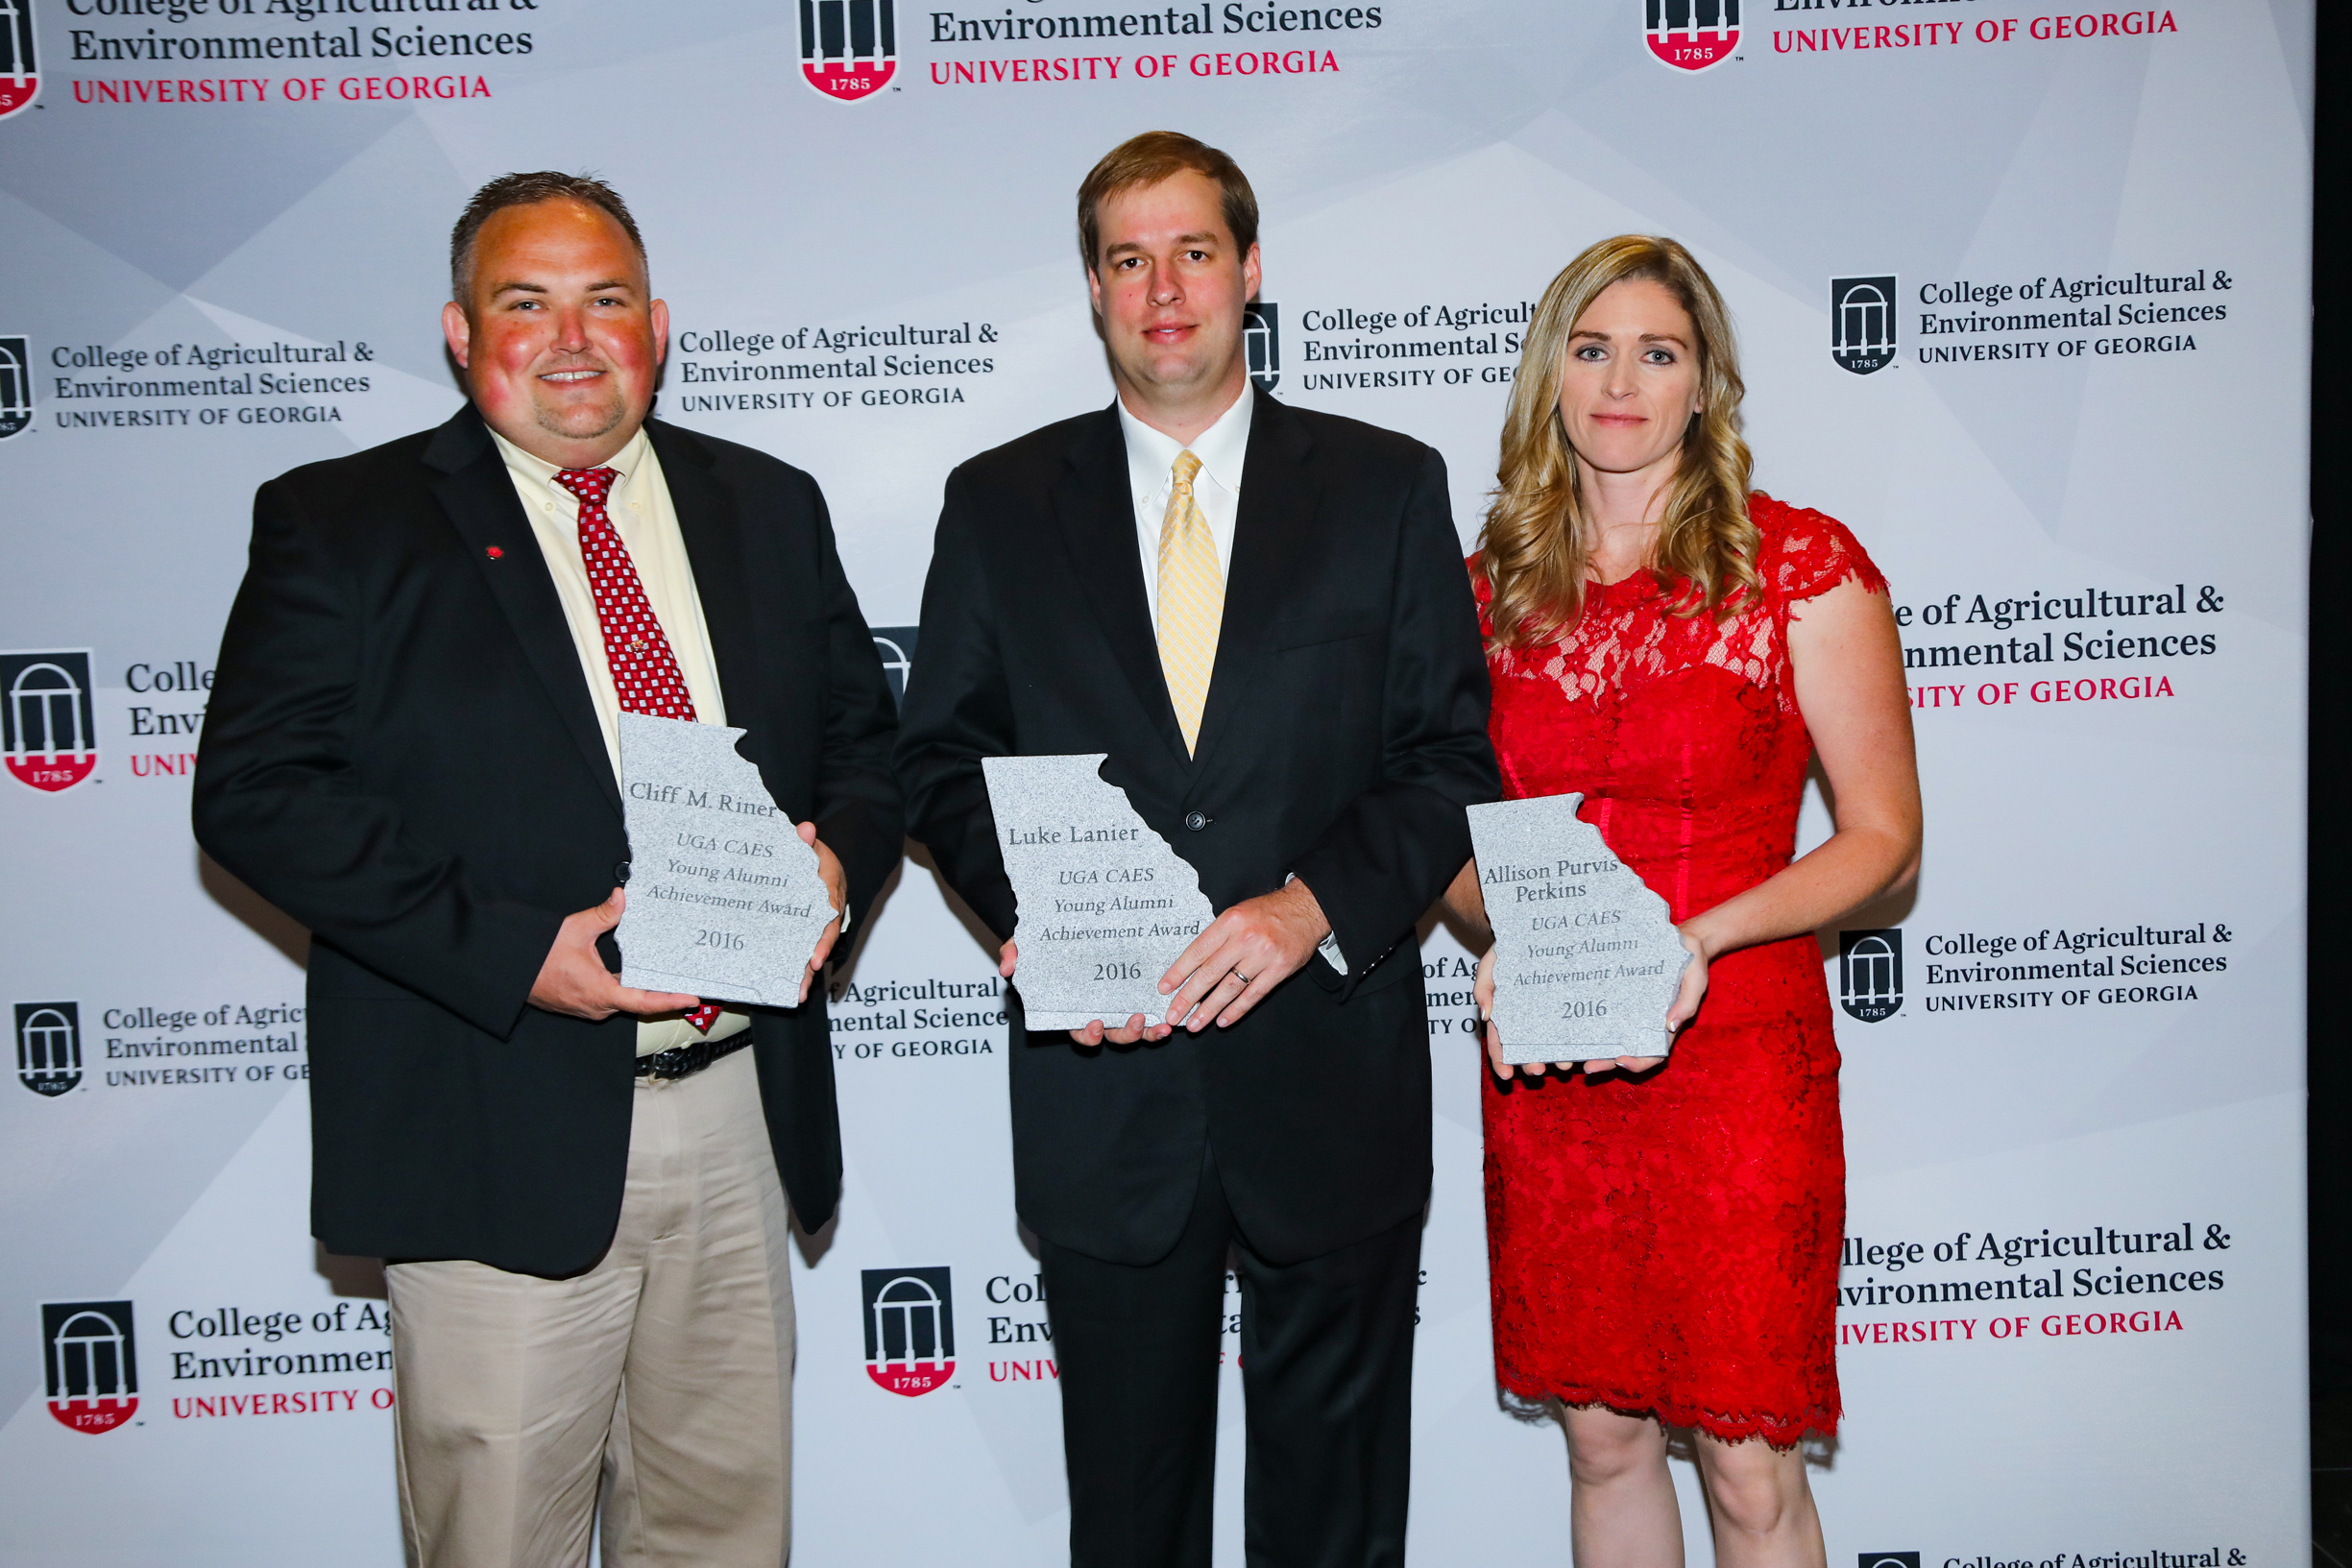 Cliff Riner, coordinator of the Vidalia Onion and Vegetable Research Center; Luke Lanier, assistant vice president of Metter Bank and Allison Perkins, UGA Cooperative Extension 4-H and youth development agent for Bartow County received CAES Young Alumni Achievement awards.